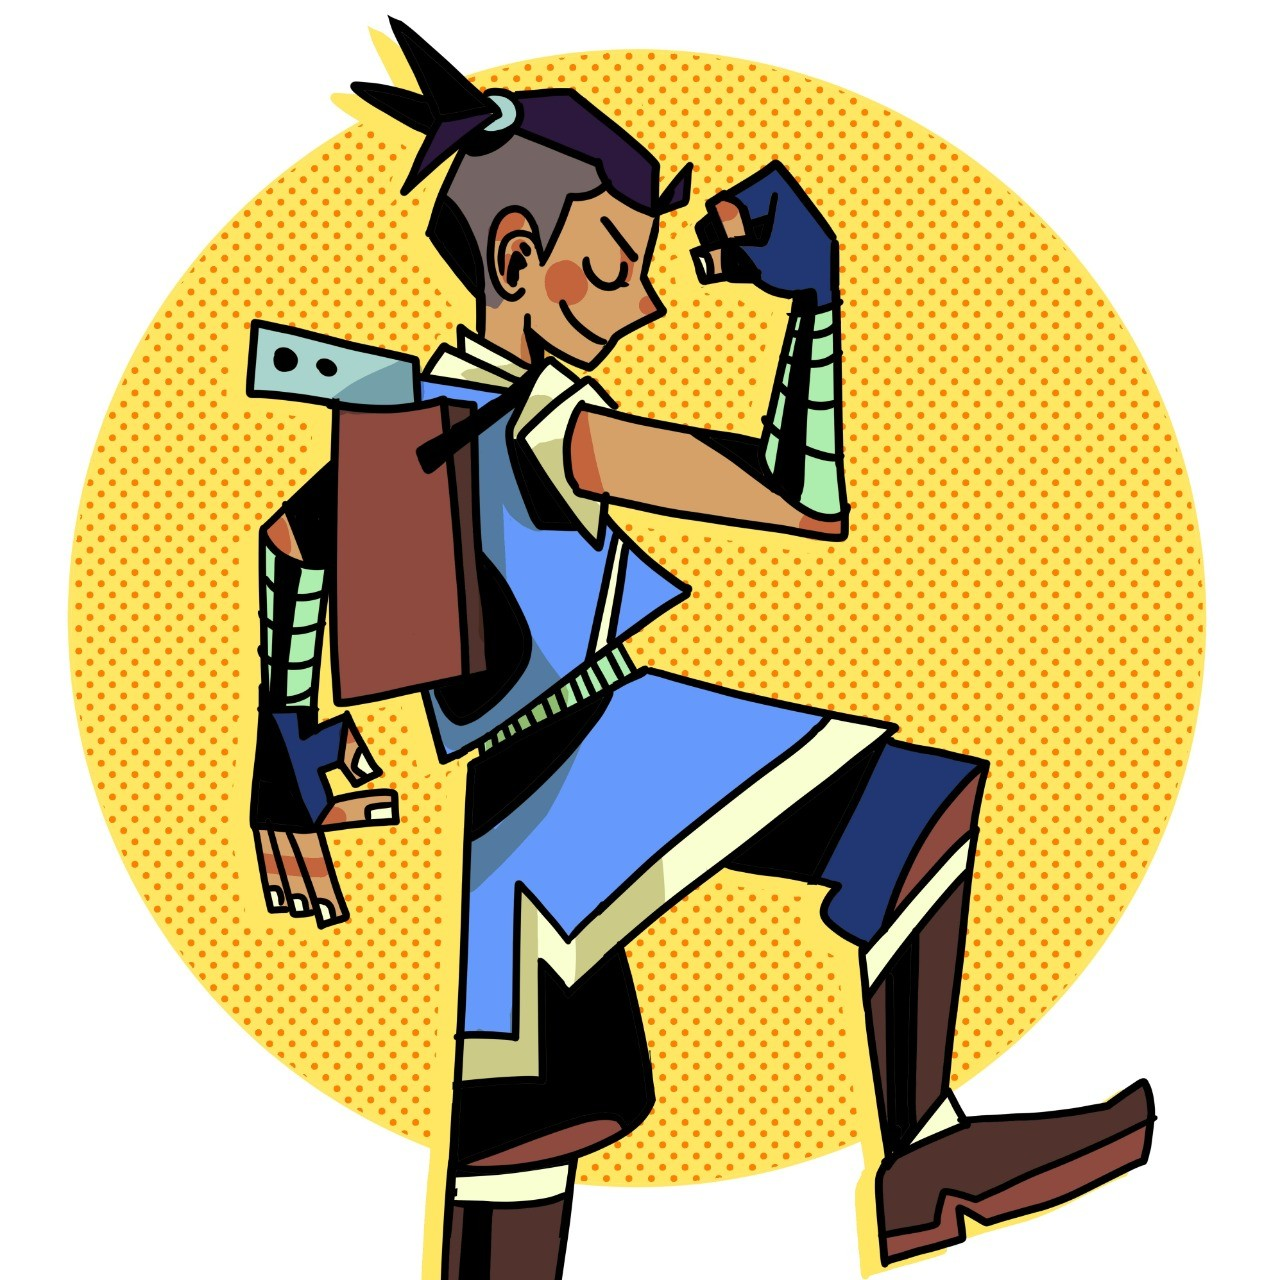 sokka flexes one arm in the air while kicking one leg up in front of a yellow circle background. he's in profile with a smug look on his face and his eye closed.